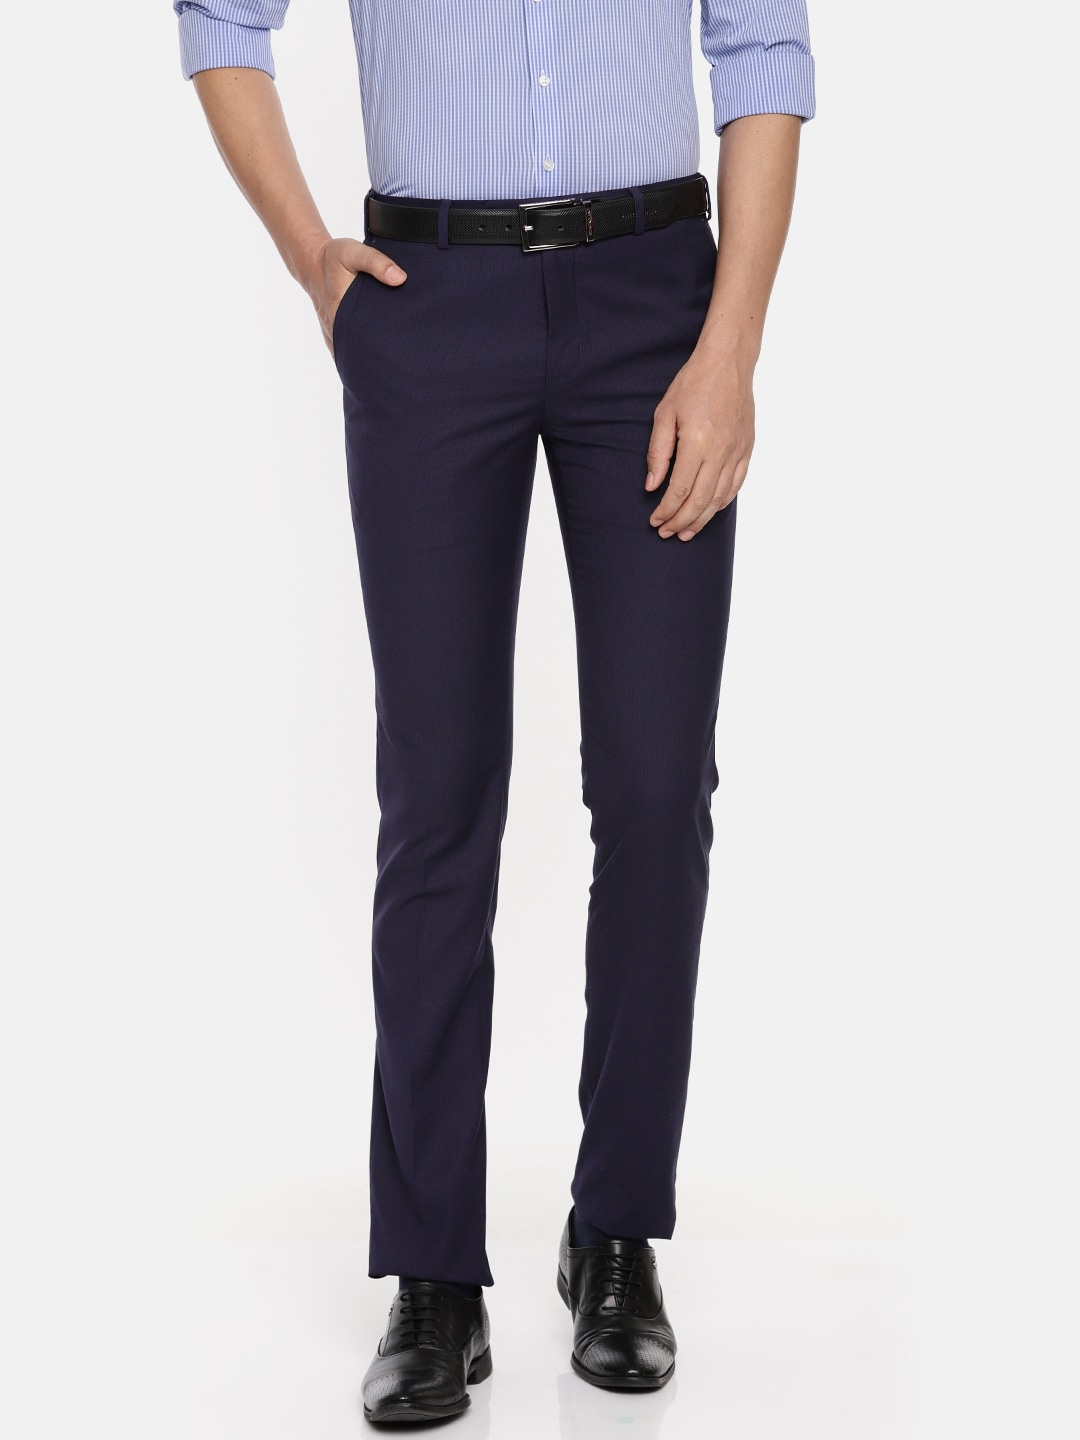 e8f9b44a22bb Formal Clothing - Buy Formal Clothing Online in India